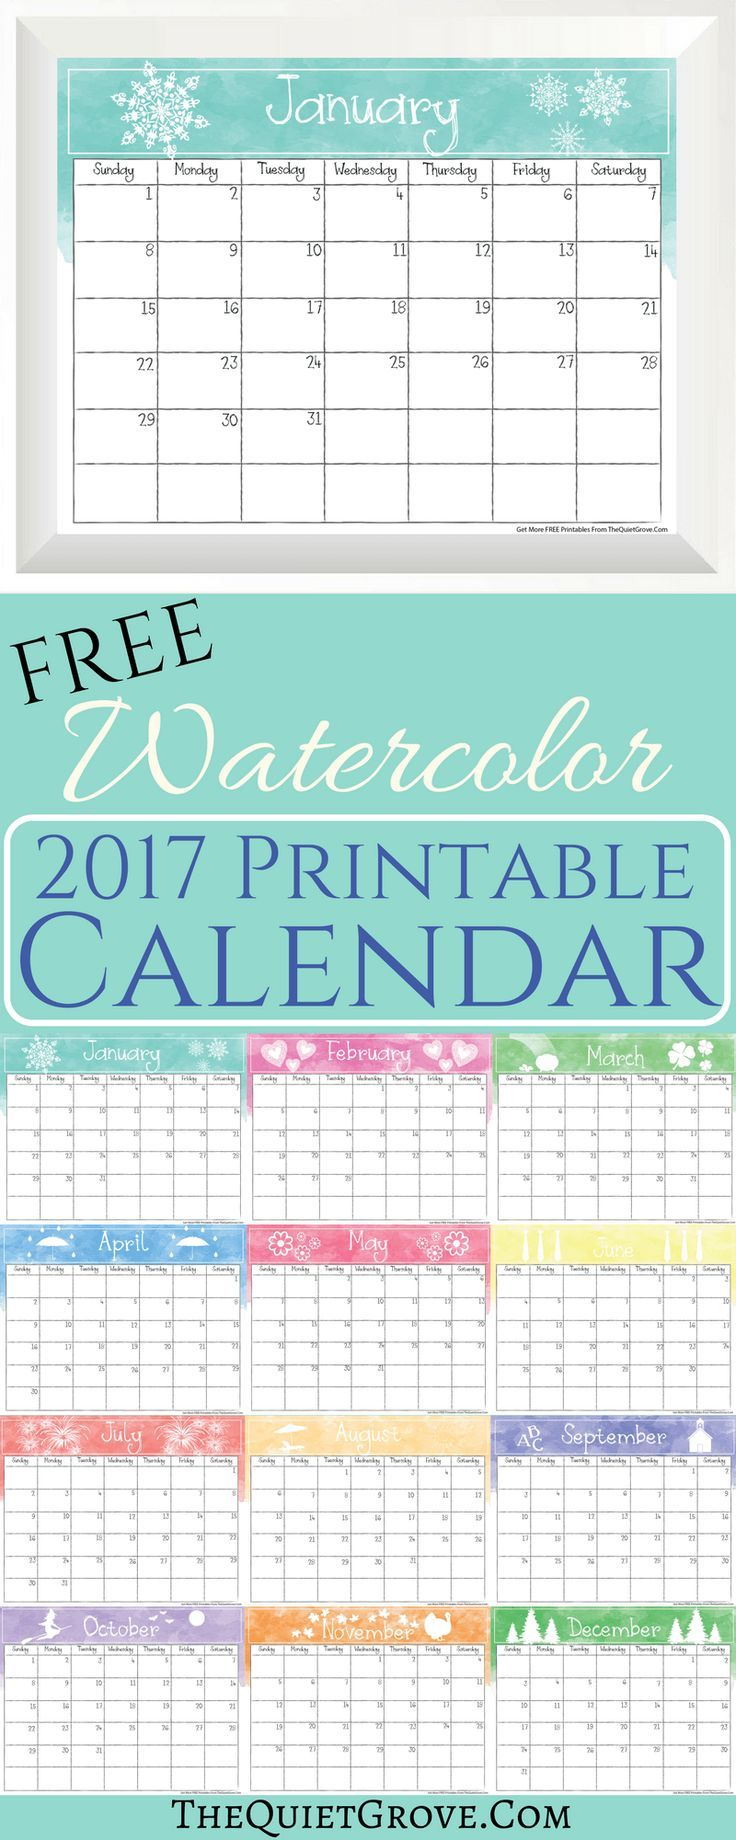 Calendar Planner Printable Sia : Ideas about calendar printable on pinterest